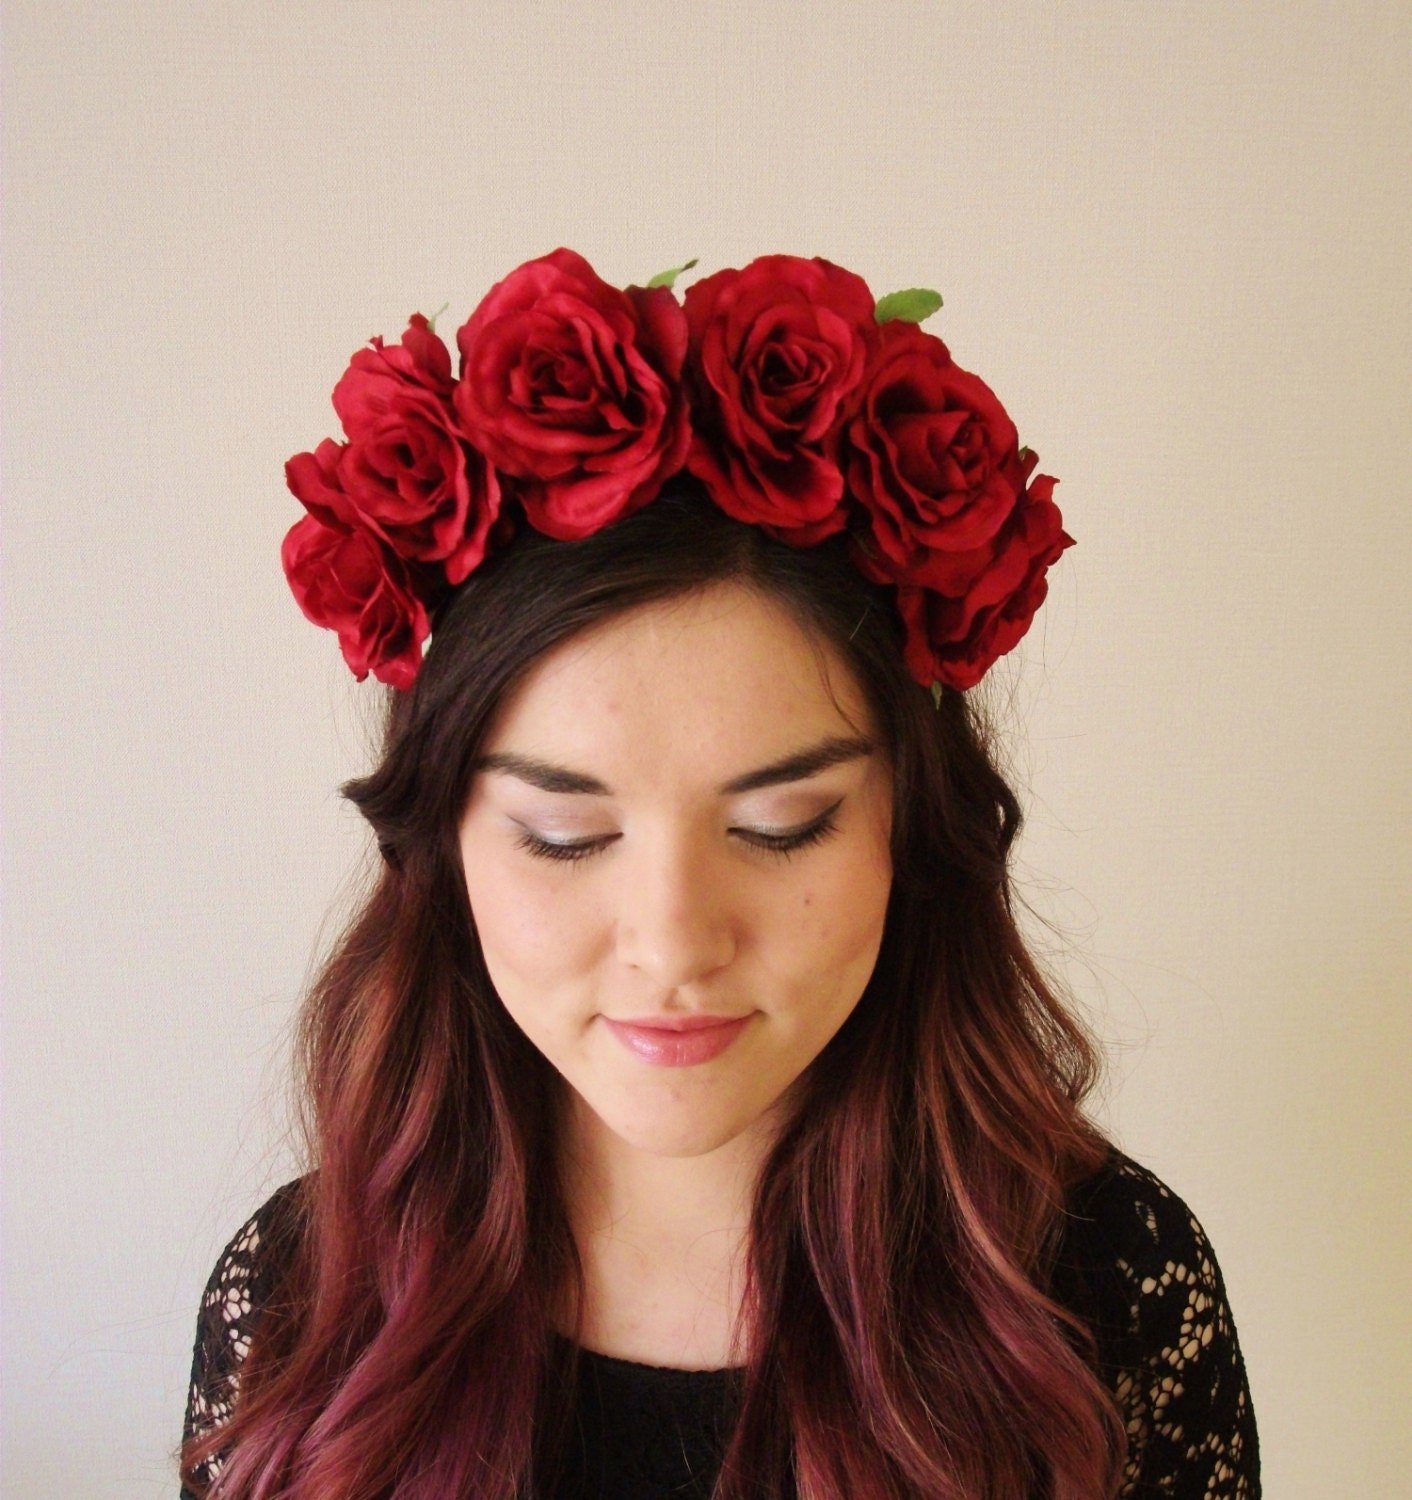 Rose Flower Rose Flower Headband